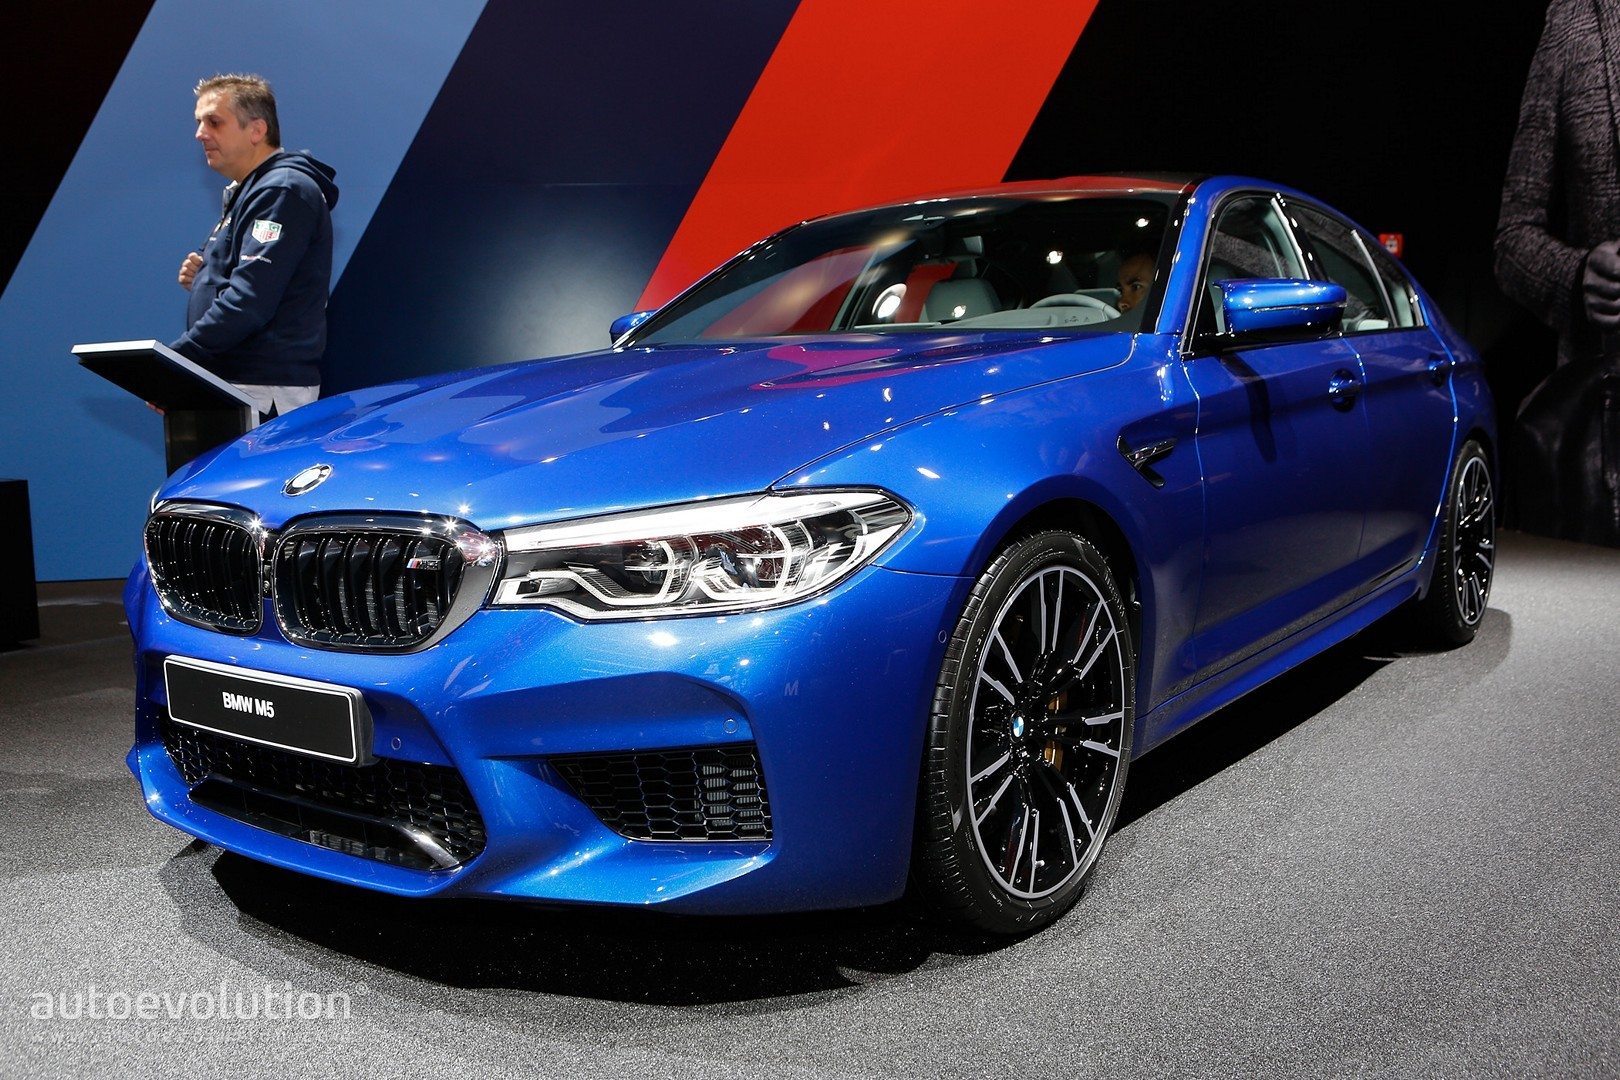 2018 Bmw M5 Flaunts 600 Hp Awd And Frozen Red Paint Autoevolution